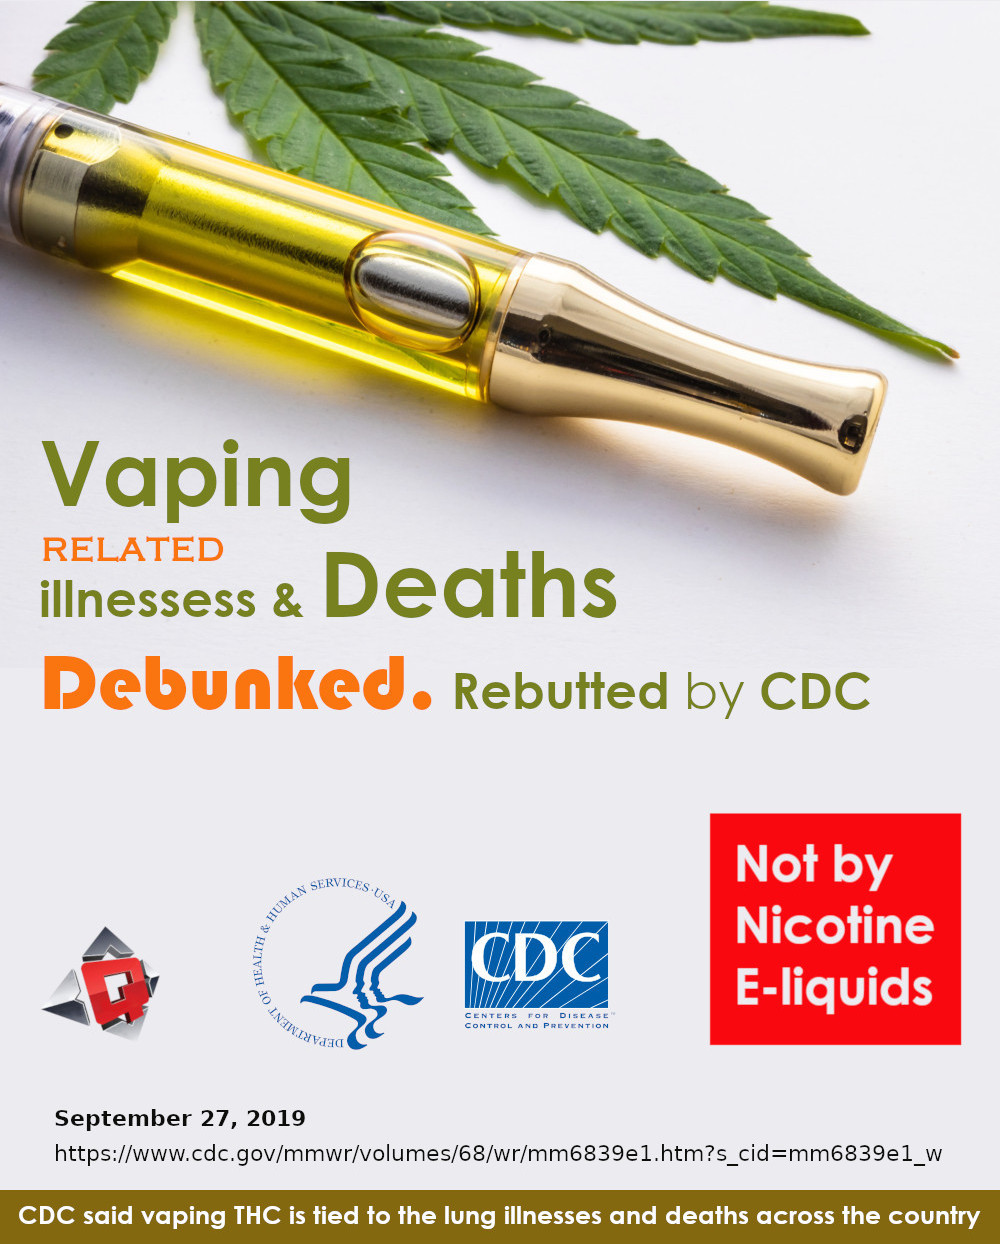 Vaping Deaths Fact.jpg